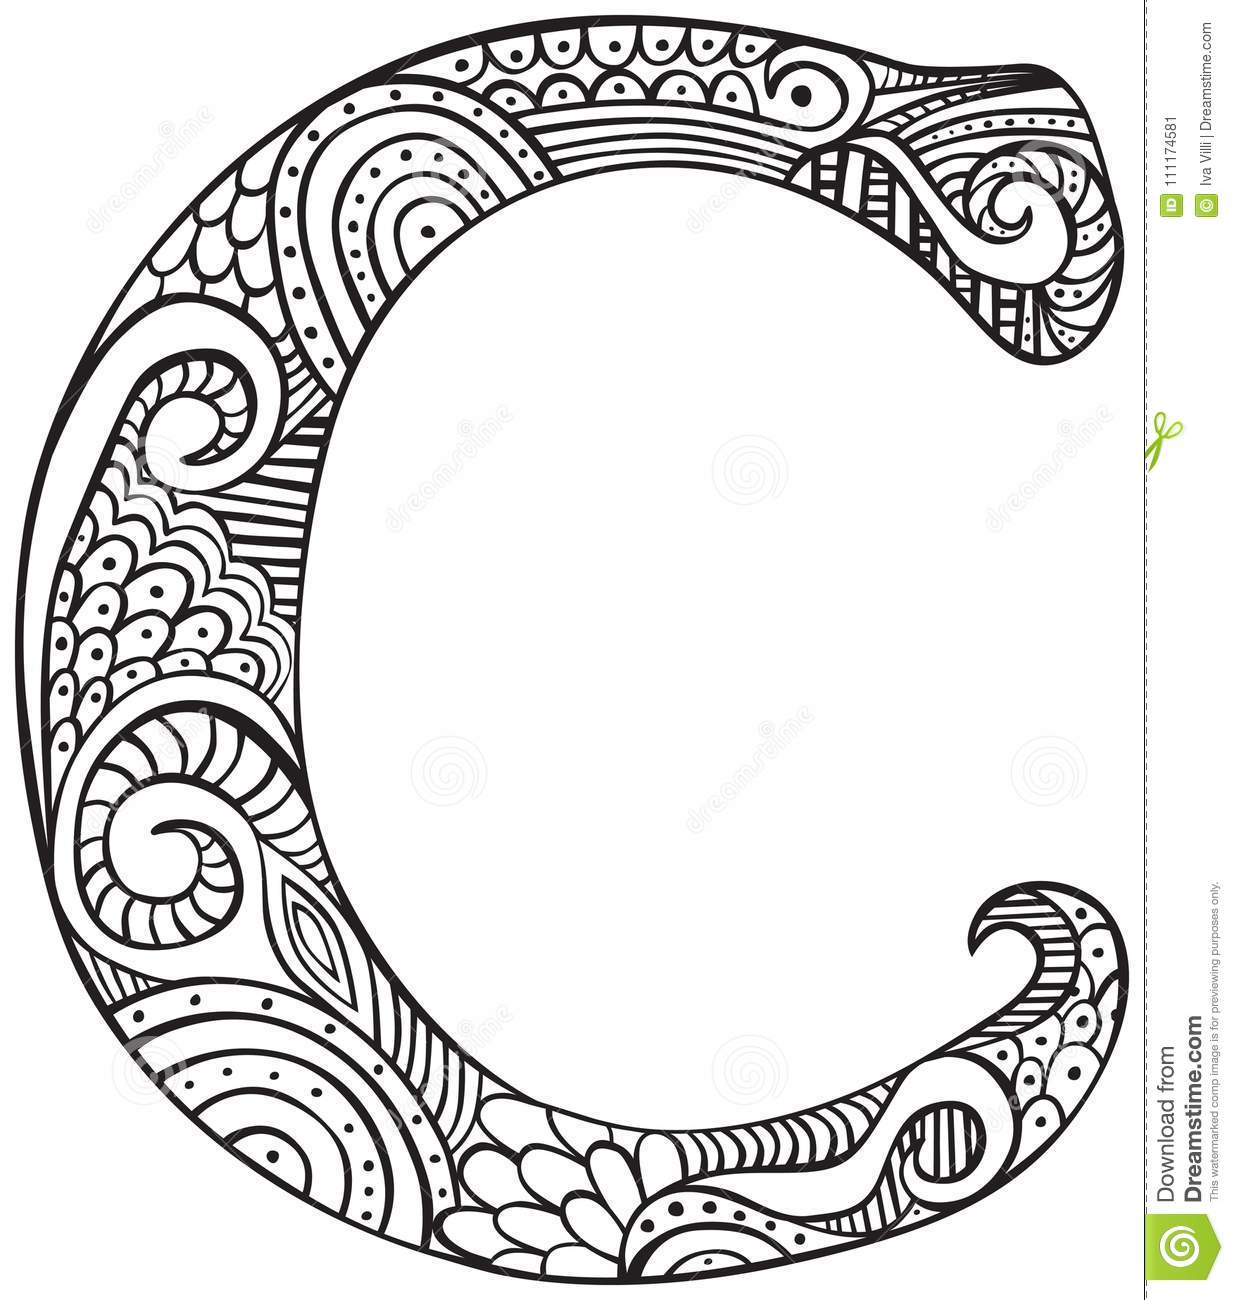 Alphabet Coloring Pages | Alphabet coloring pages, Adult coloring ... | 1300x1234